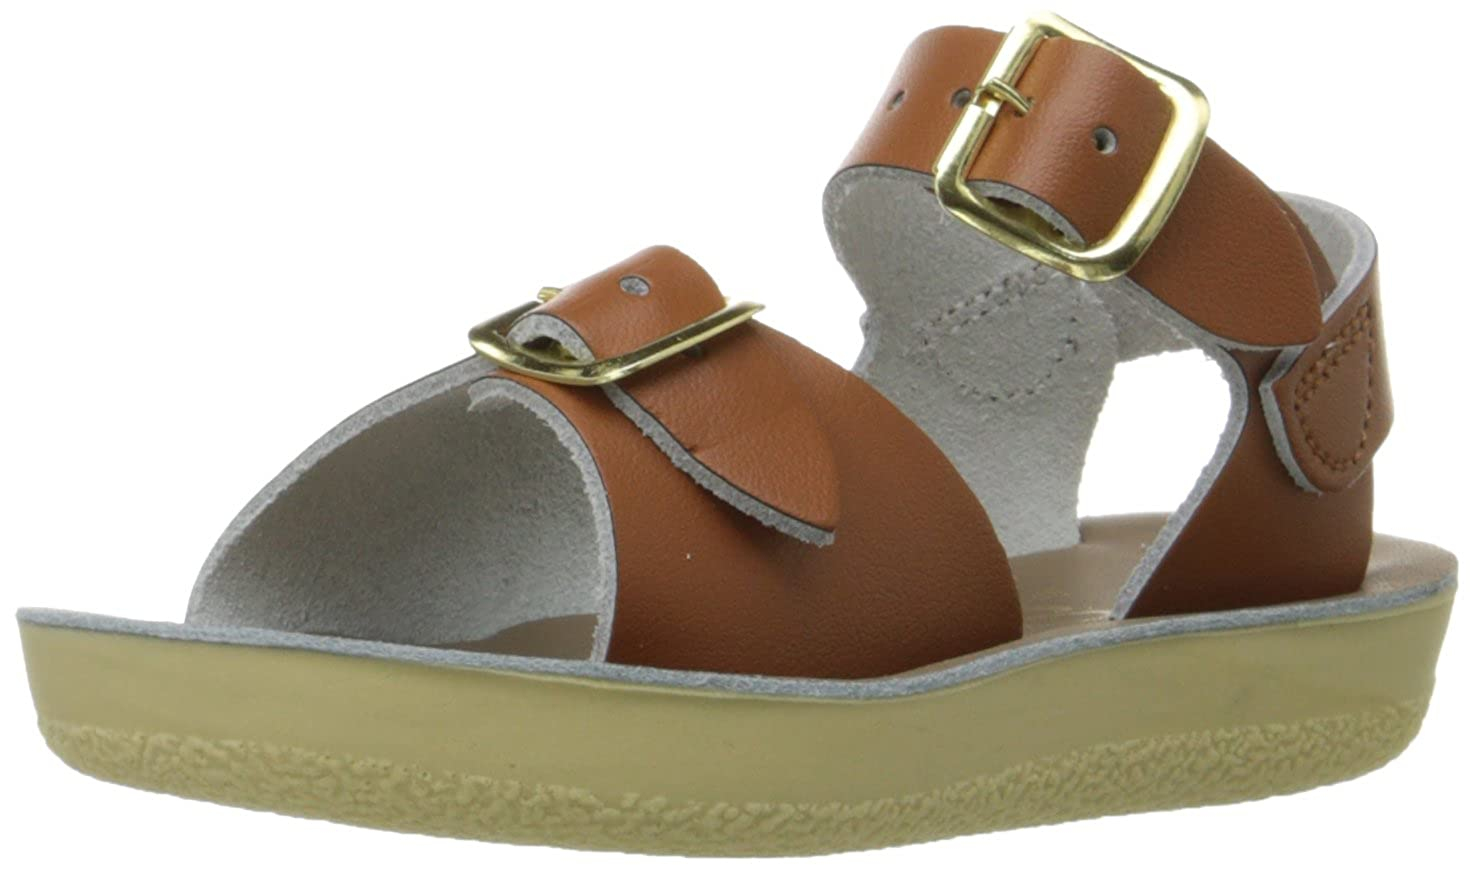 Salt Water Sandals by Hoy Shoe Surfer Sandal (Toddler/Little Kid/Big Kid/Women's) Saltwater by Hoy Style 1700 - K